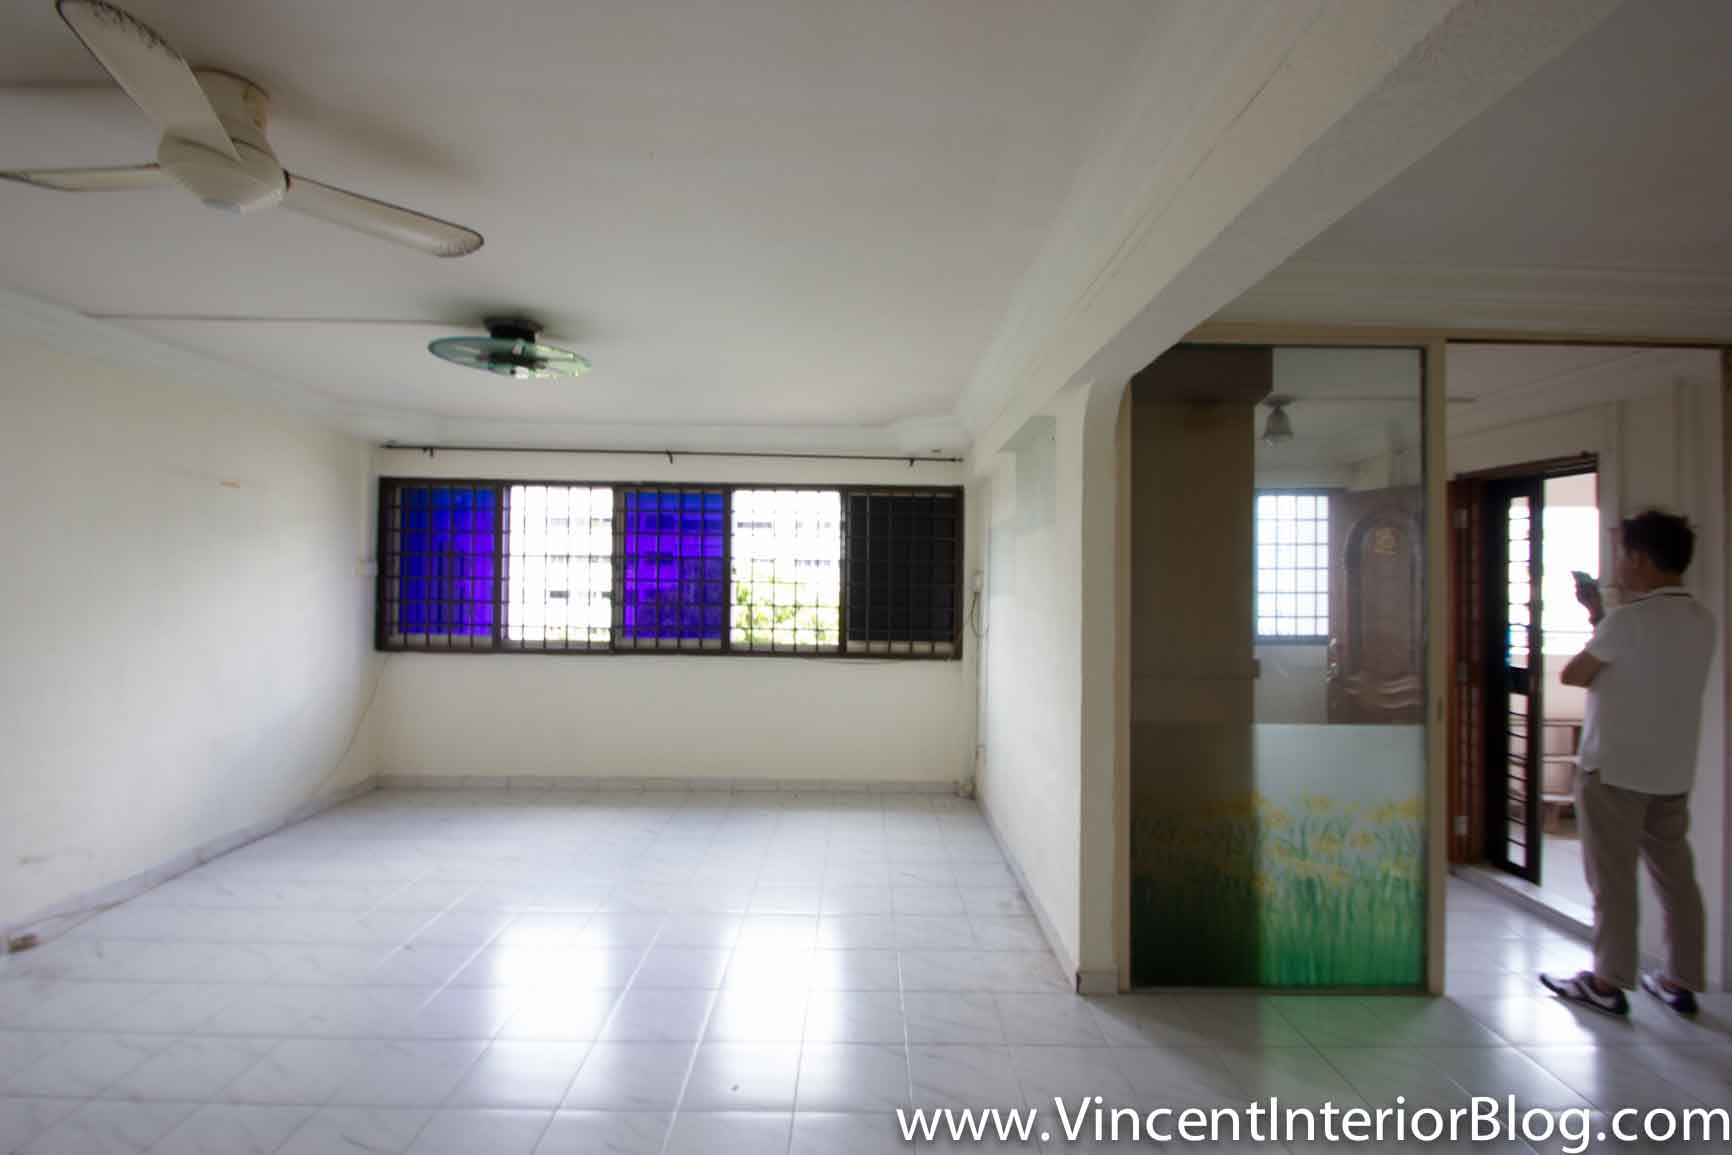 5 room hdb yishun living room 9 vincent interior blog for Interior design 4 room